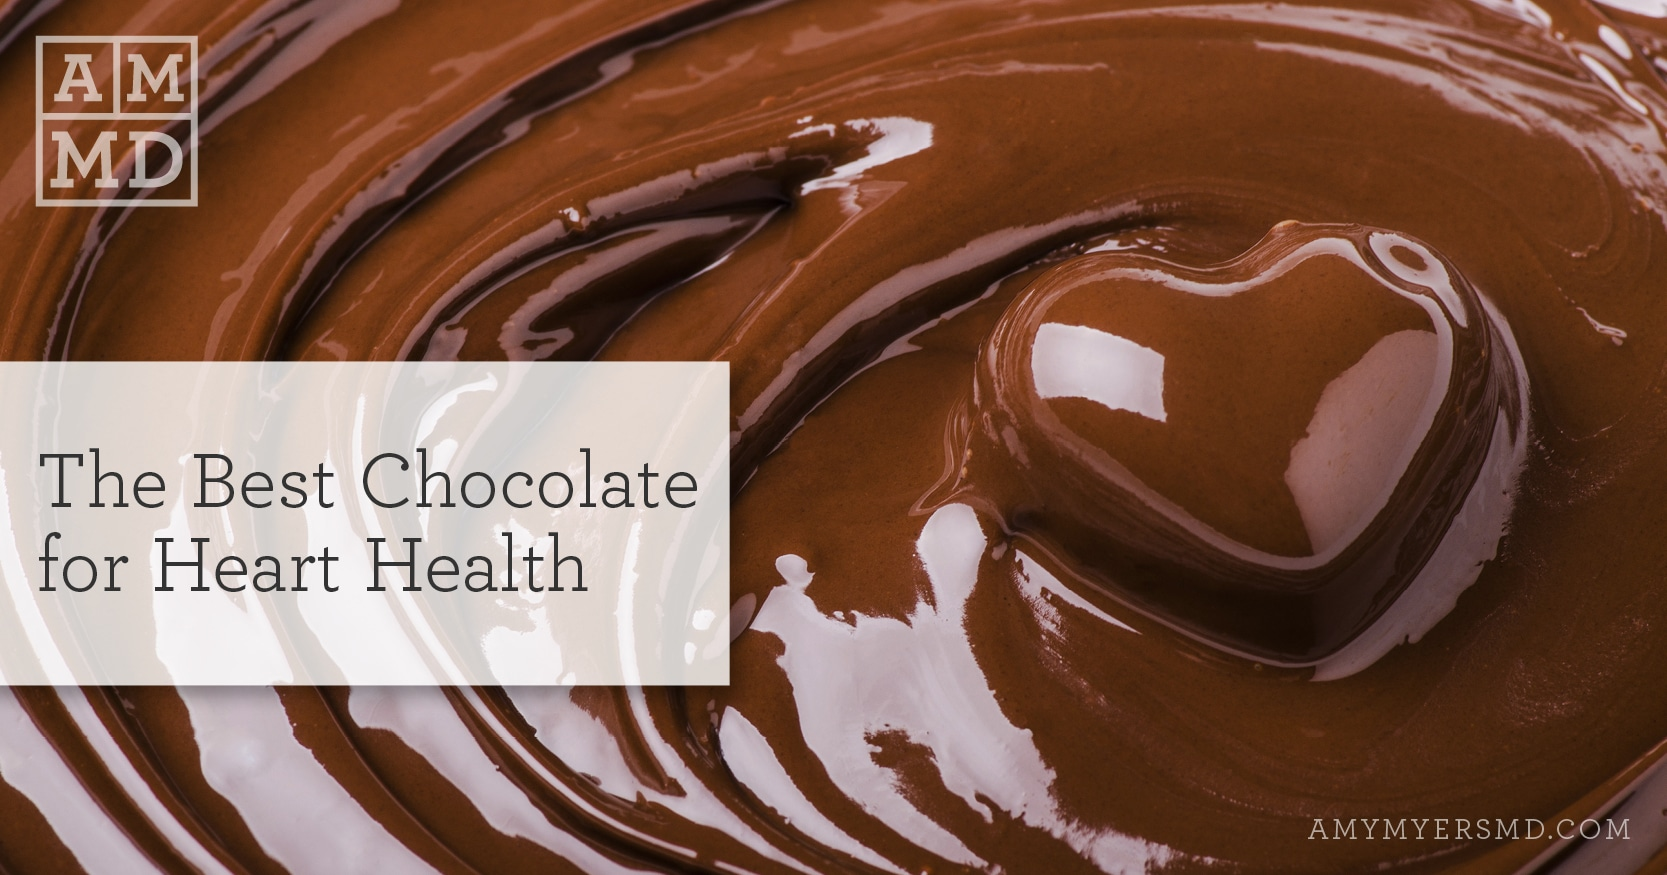 The Best Chocolate for Heart Health - Rich Dark Chocolate - Featured Image - Amy Myers MD